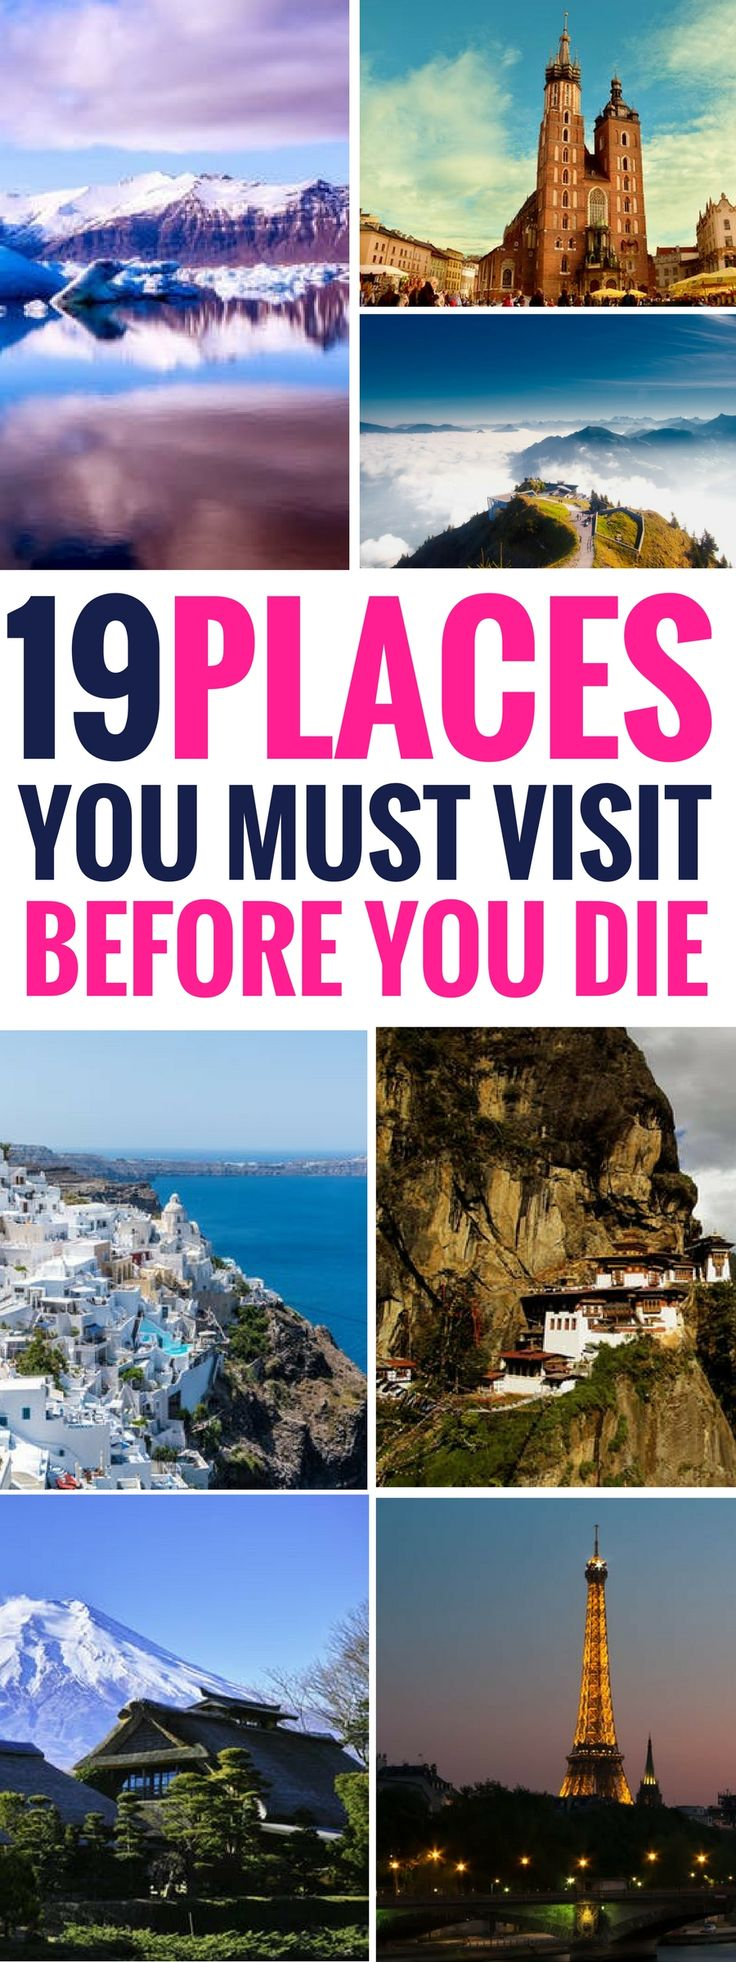 These 19 amazing places to visit before you die are THE BEST! I'm so glad I found these amazing travel destinations for my travel bucket list! Now I have some great places to travel to! Pinning this for sure! #travelgoals #traveltuesday #destinationguide #destination #vacation #travelling #traveller